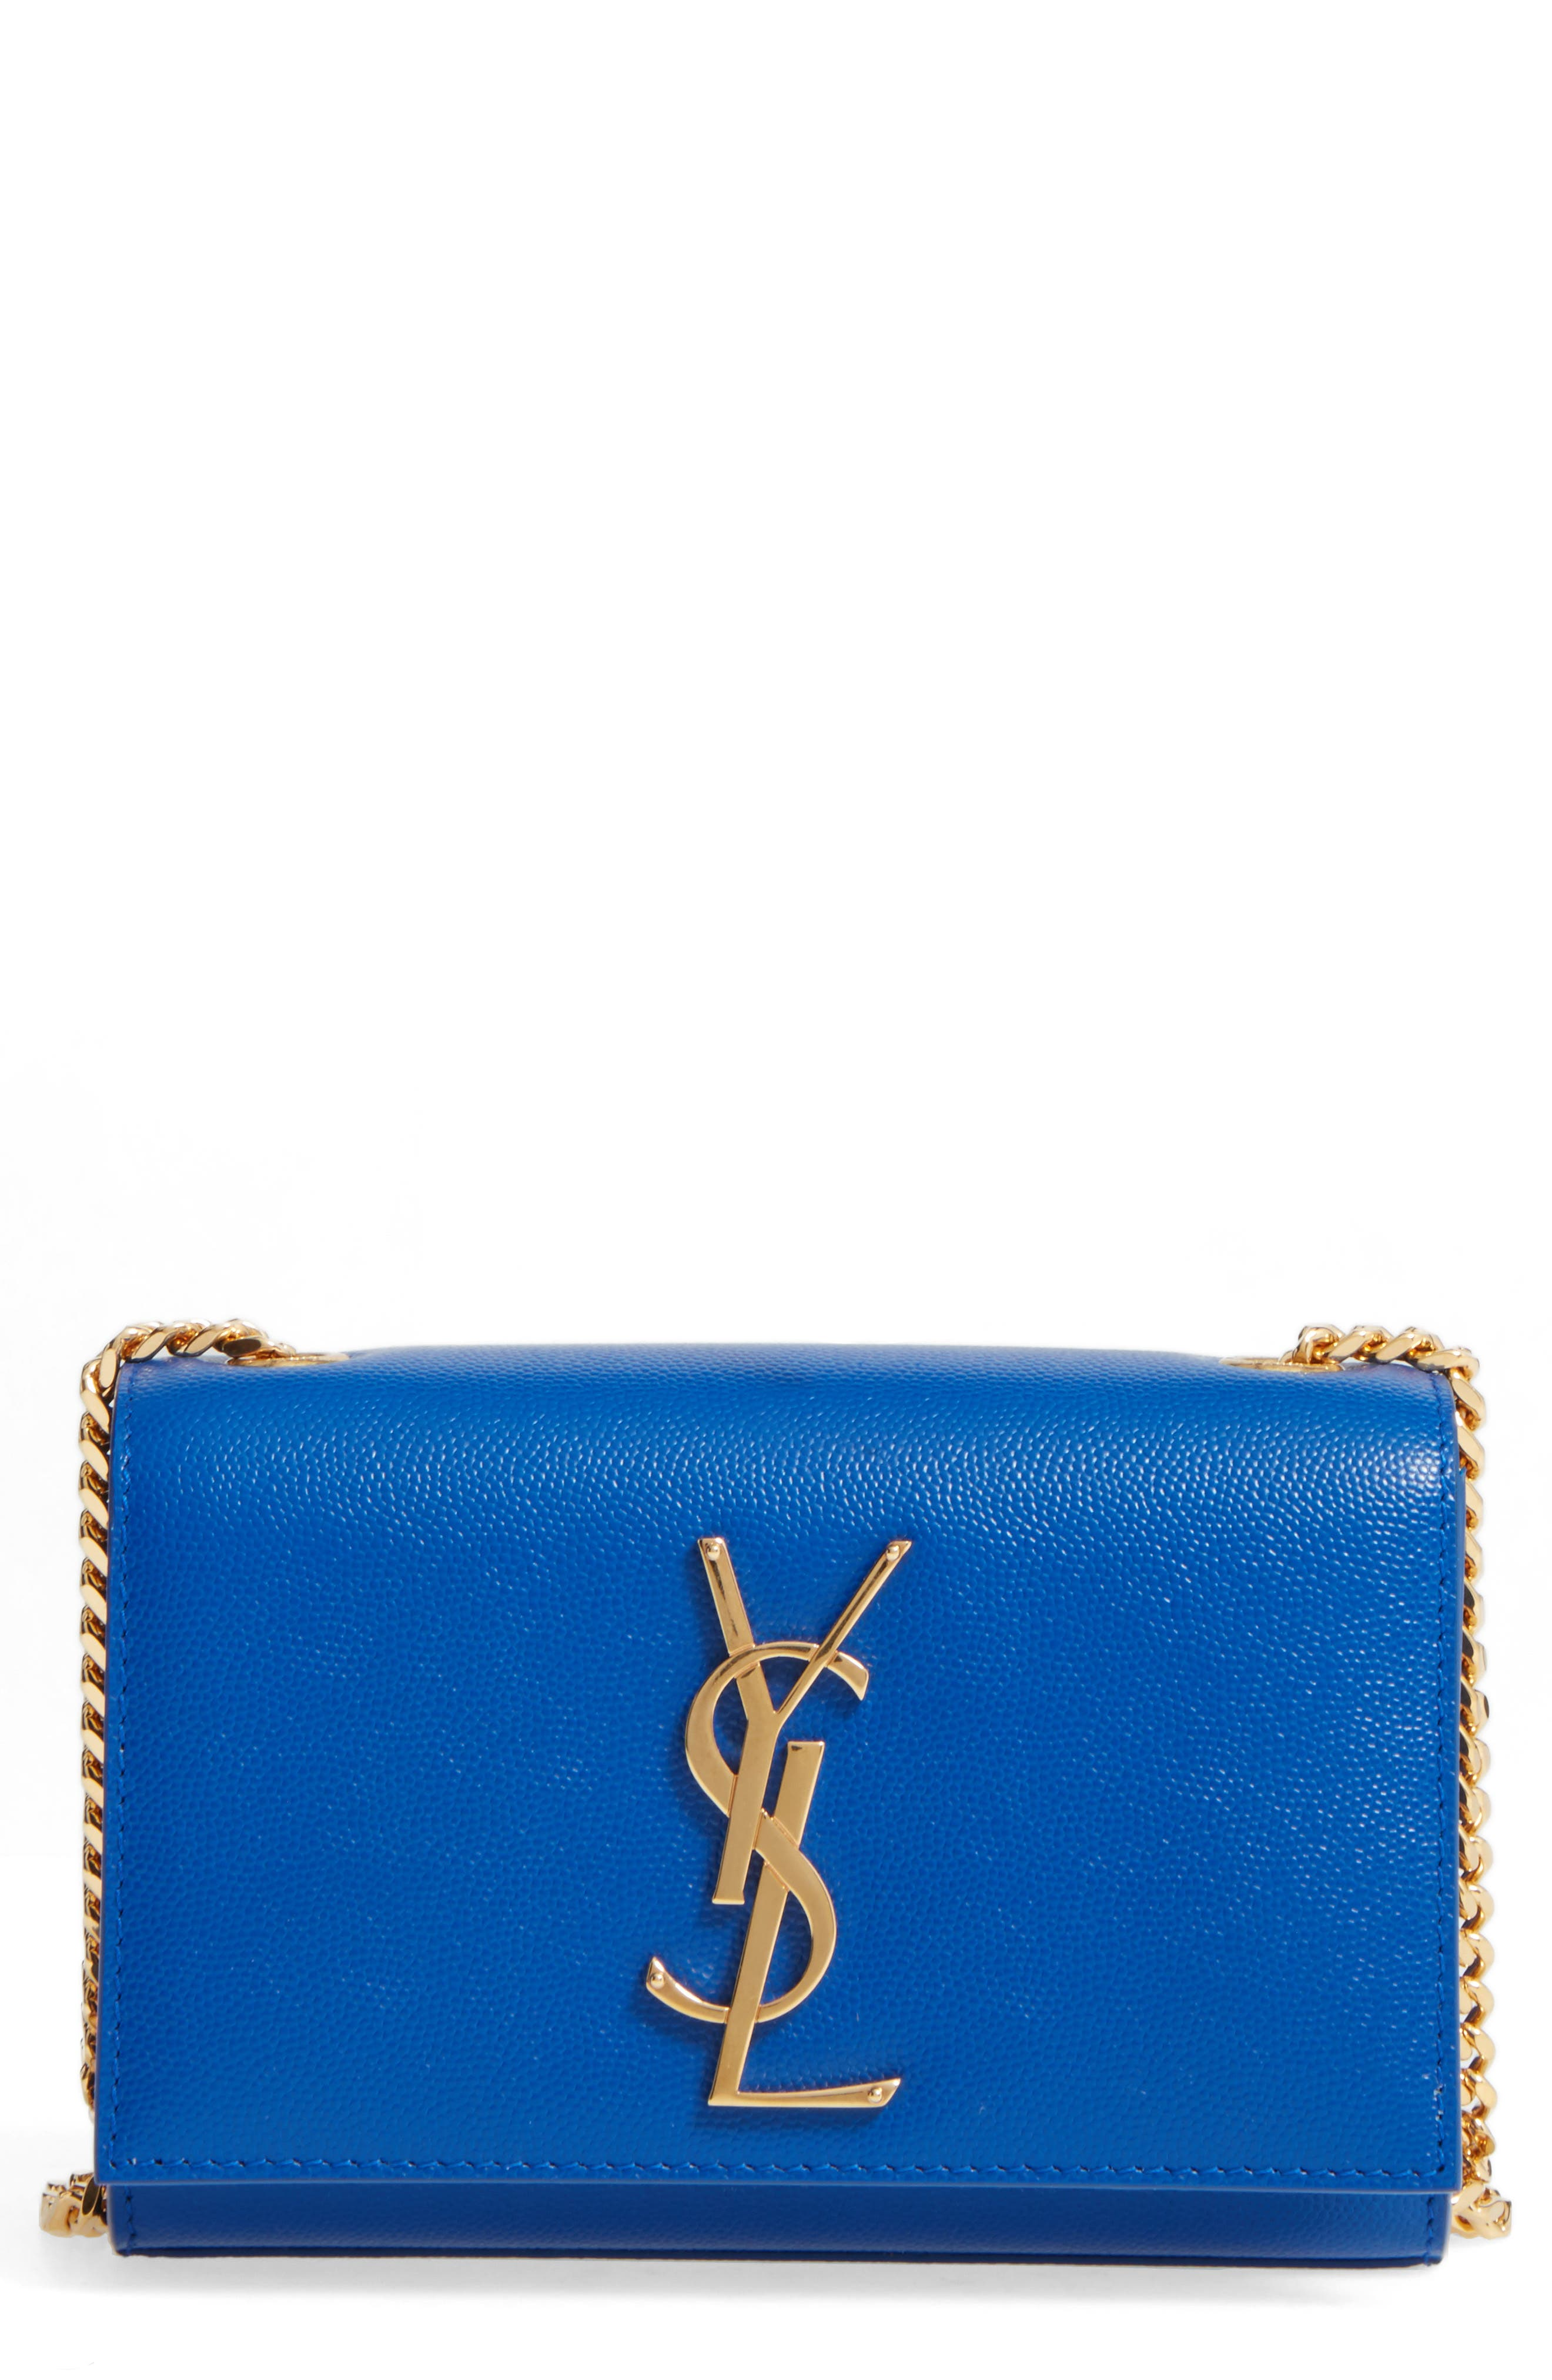 Saint Laurent 'Small Monogram' Crossbody Bag